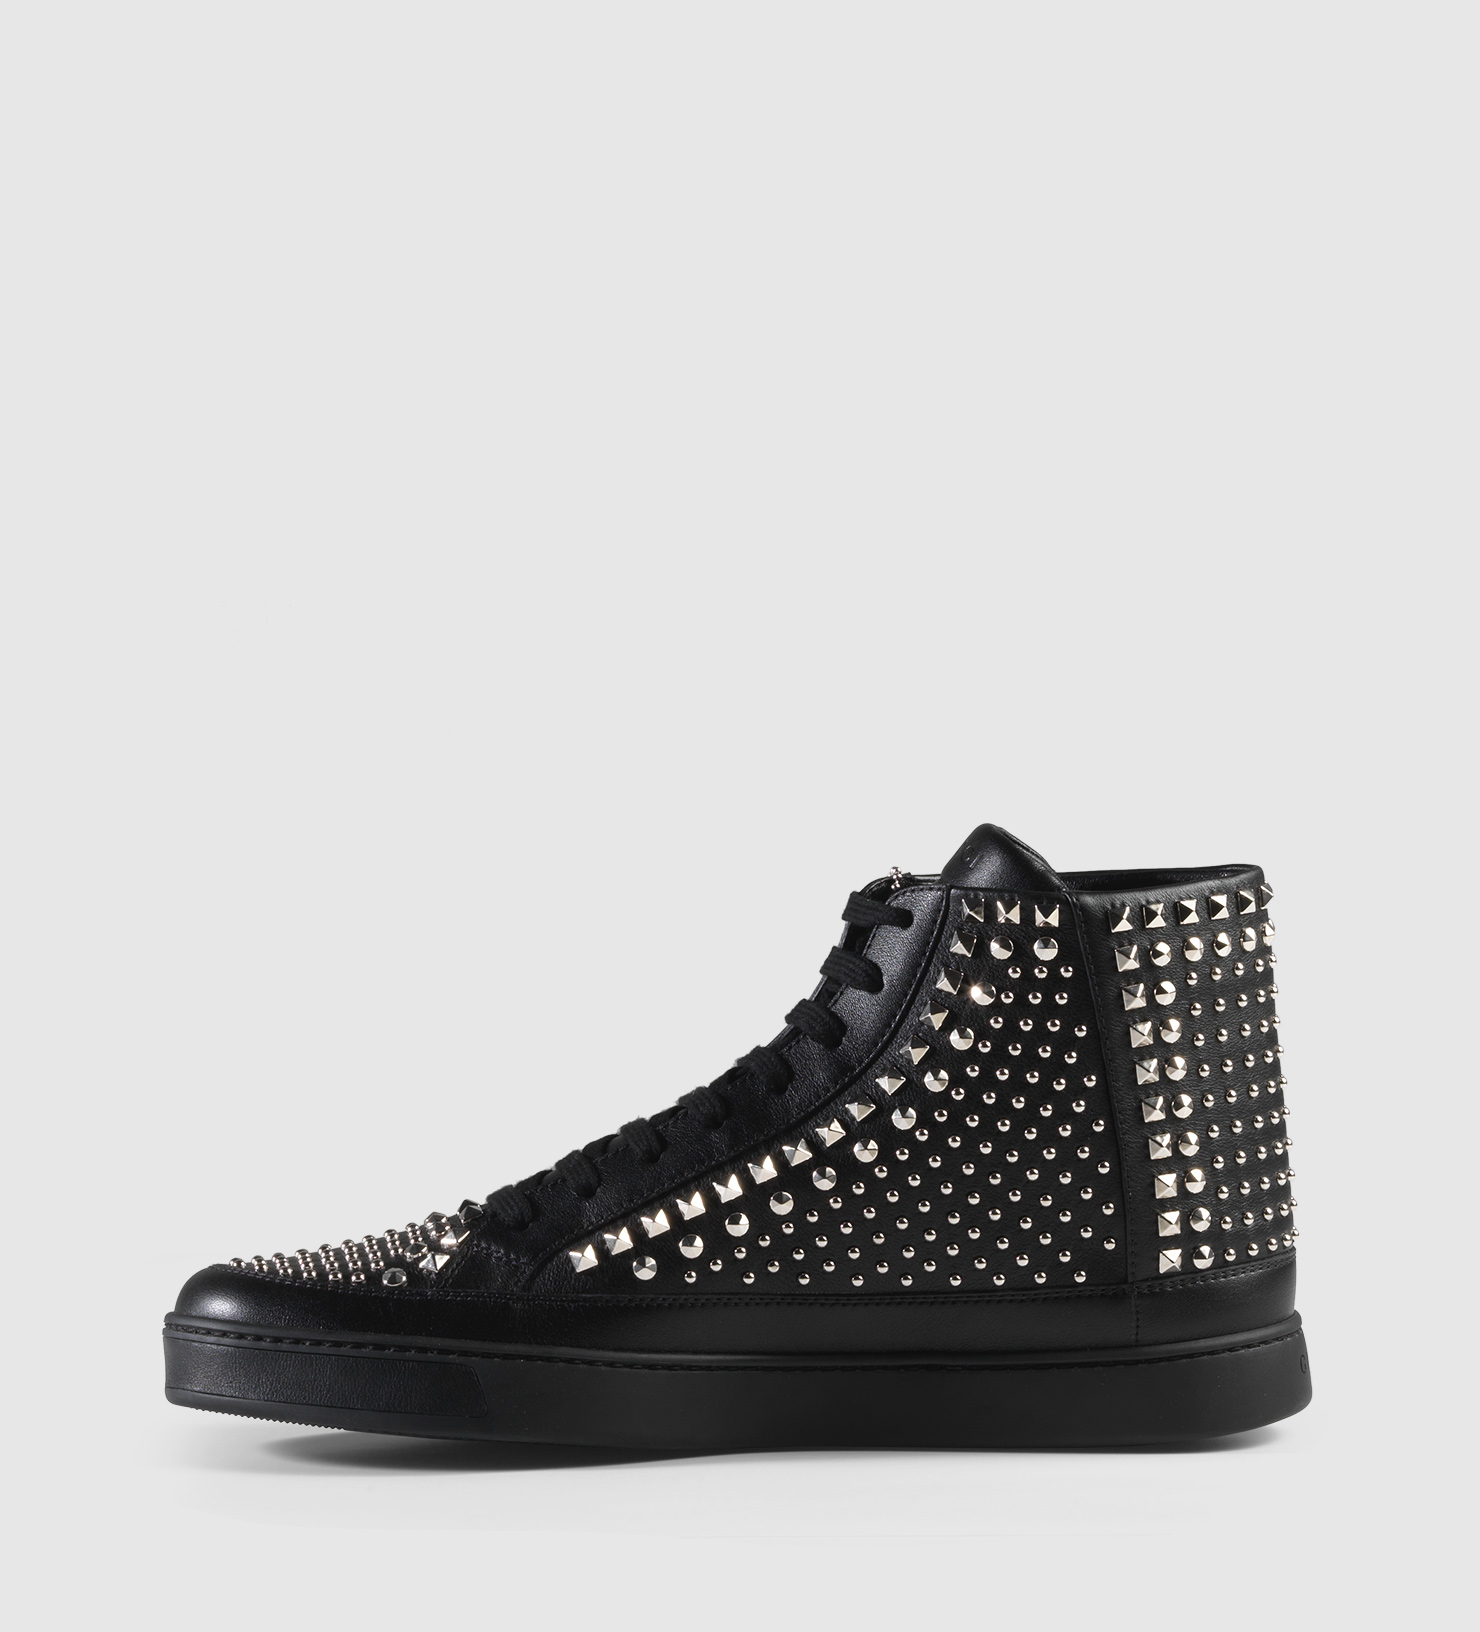 gucci studded leather high top sneaker in black for men lyst. Black Bedroom Furniture Sets. Home Design Ideas